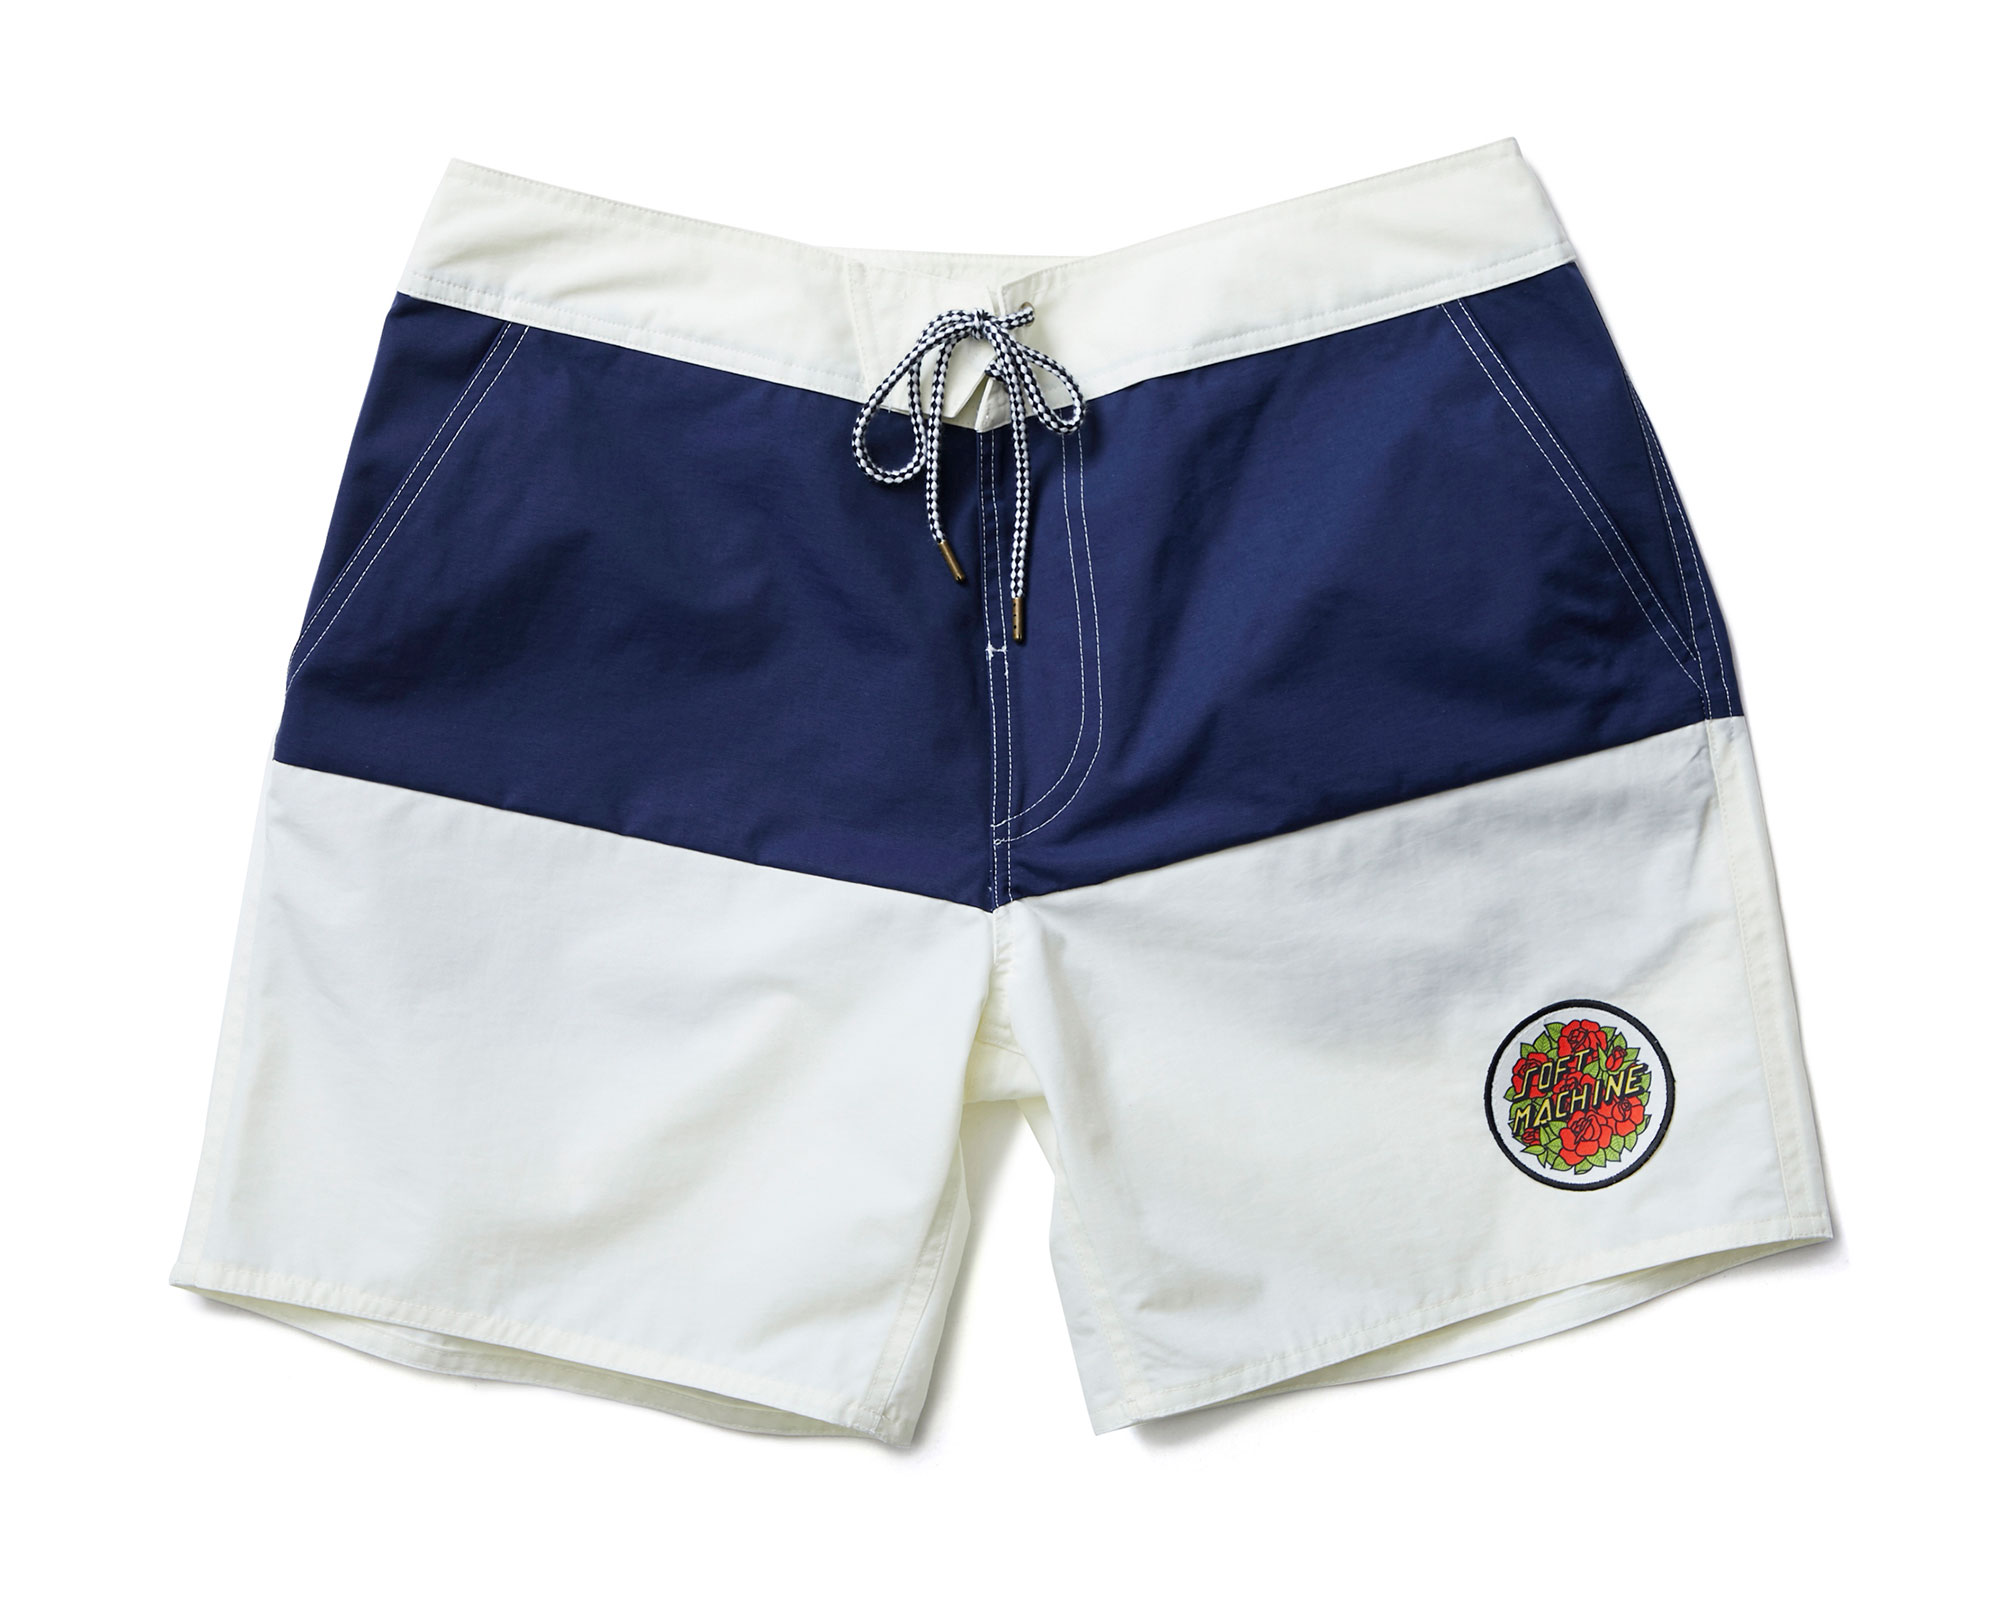 COAST BOARD SHORTS